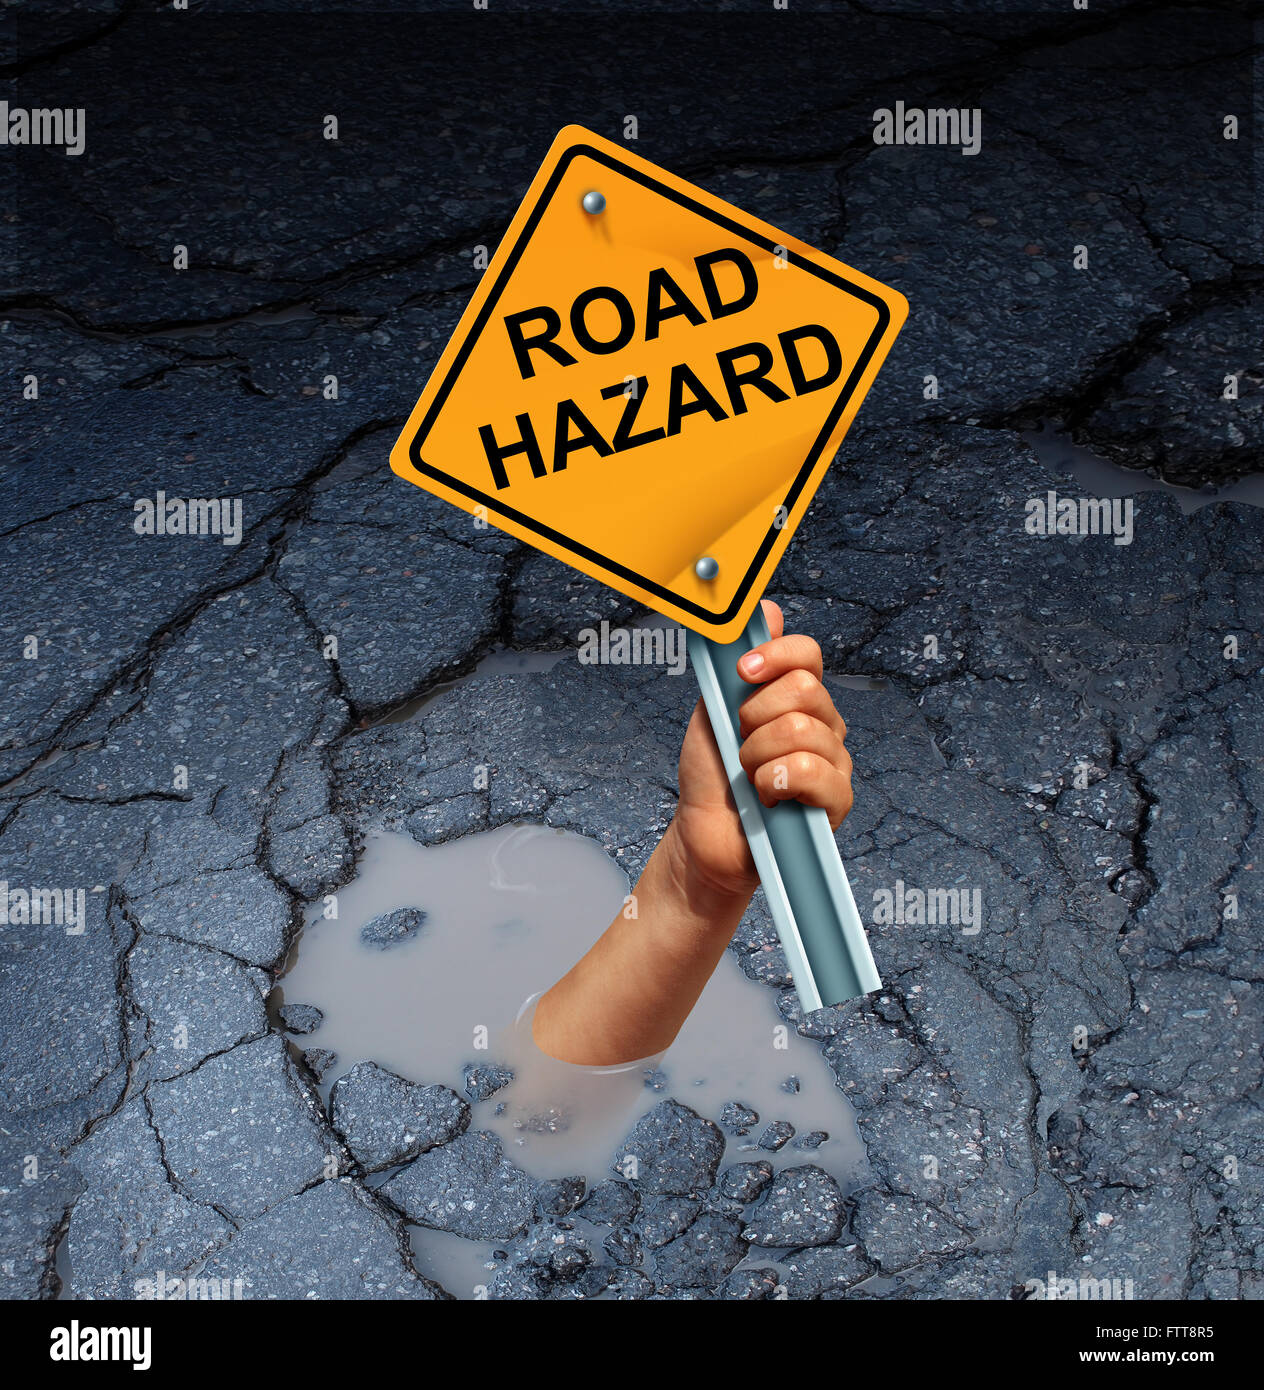 Road hazard concept as an accident victim drowning in a broken street pothole while holding a traffic sign as a - Stock Image